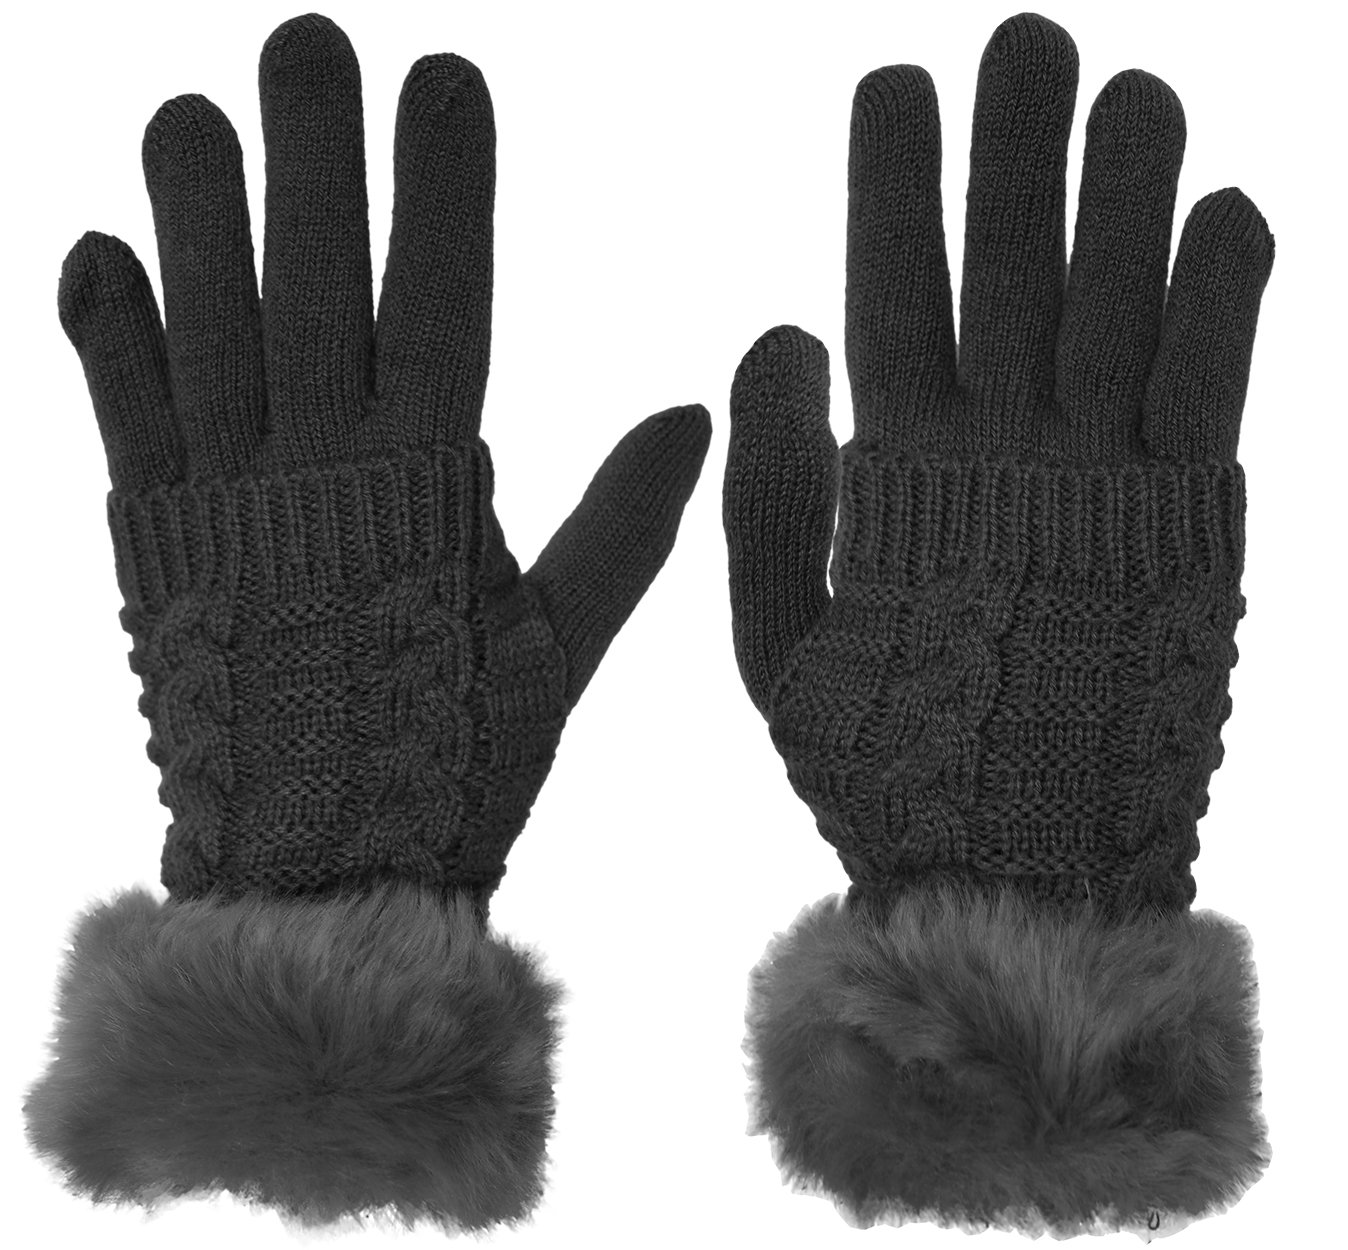 KMystic Women's Knit Gloves and Fur Hand Warmer Set (Grey)